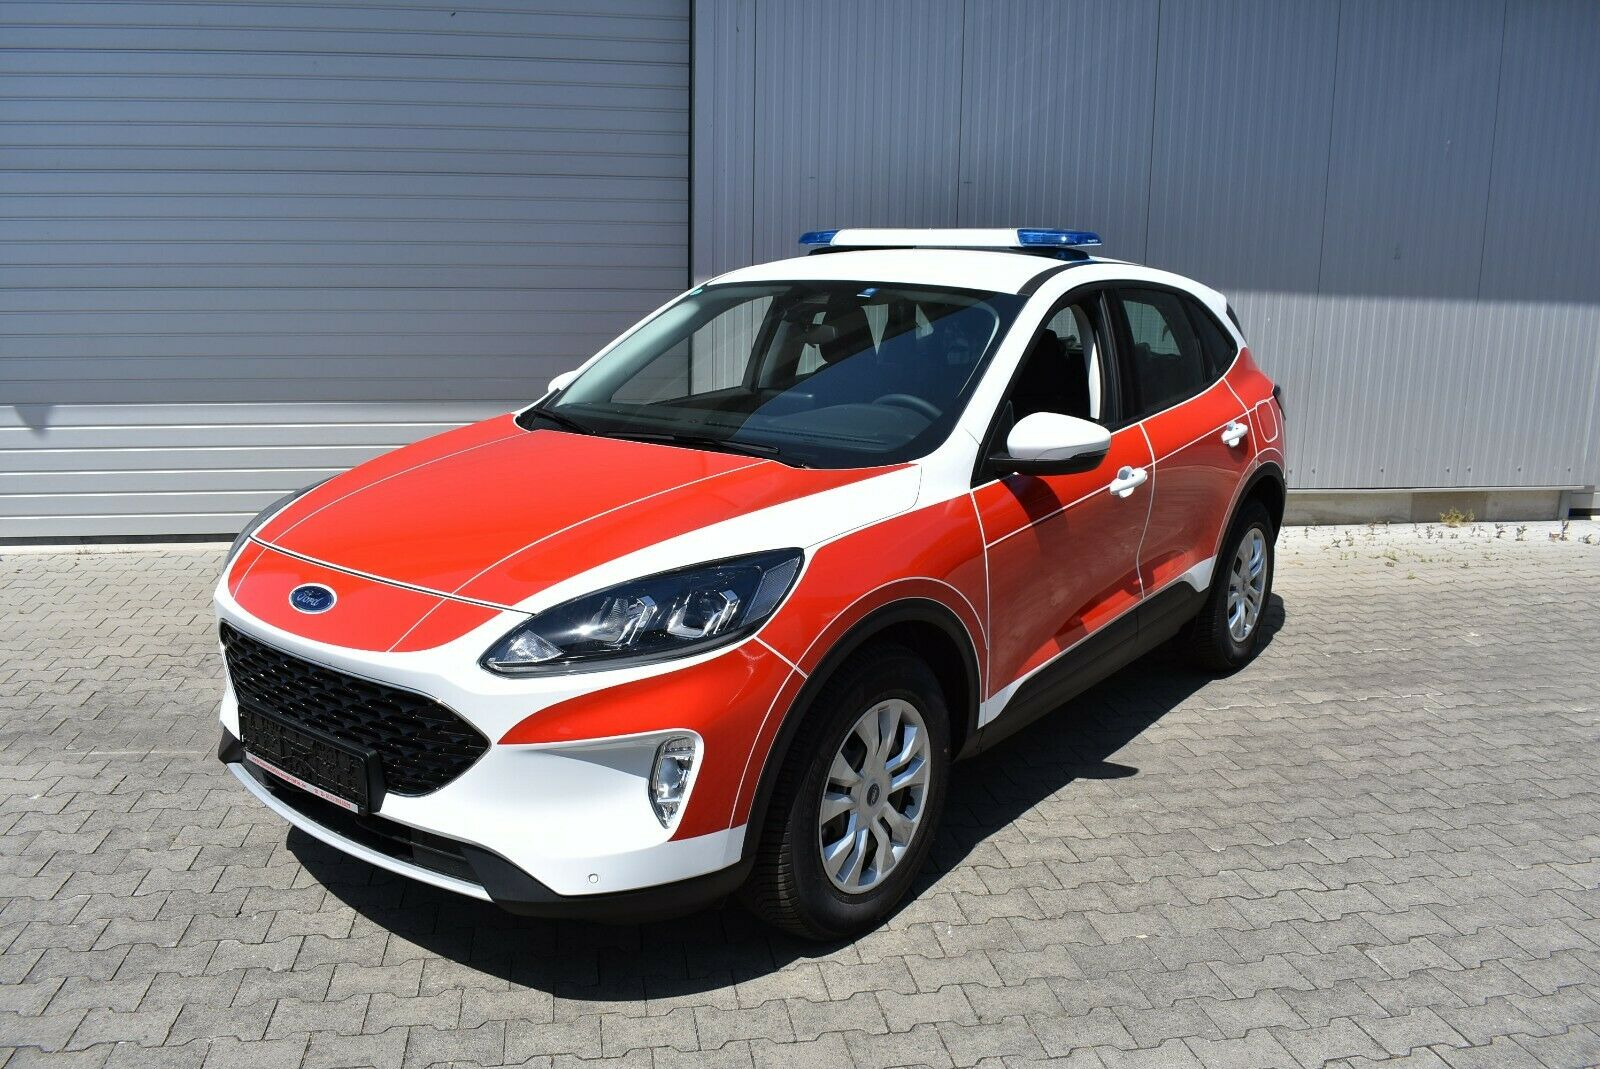 Kuga Cool & Connect 2,0l 4x4 Feuerwehr KdoW